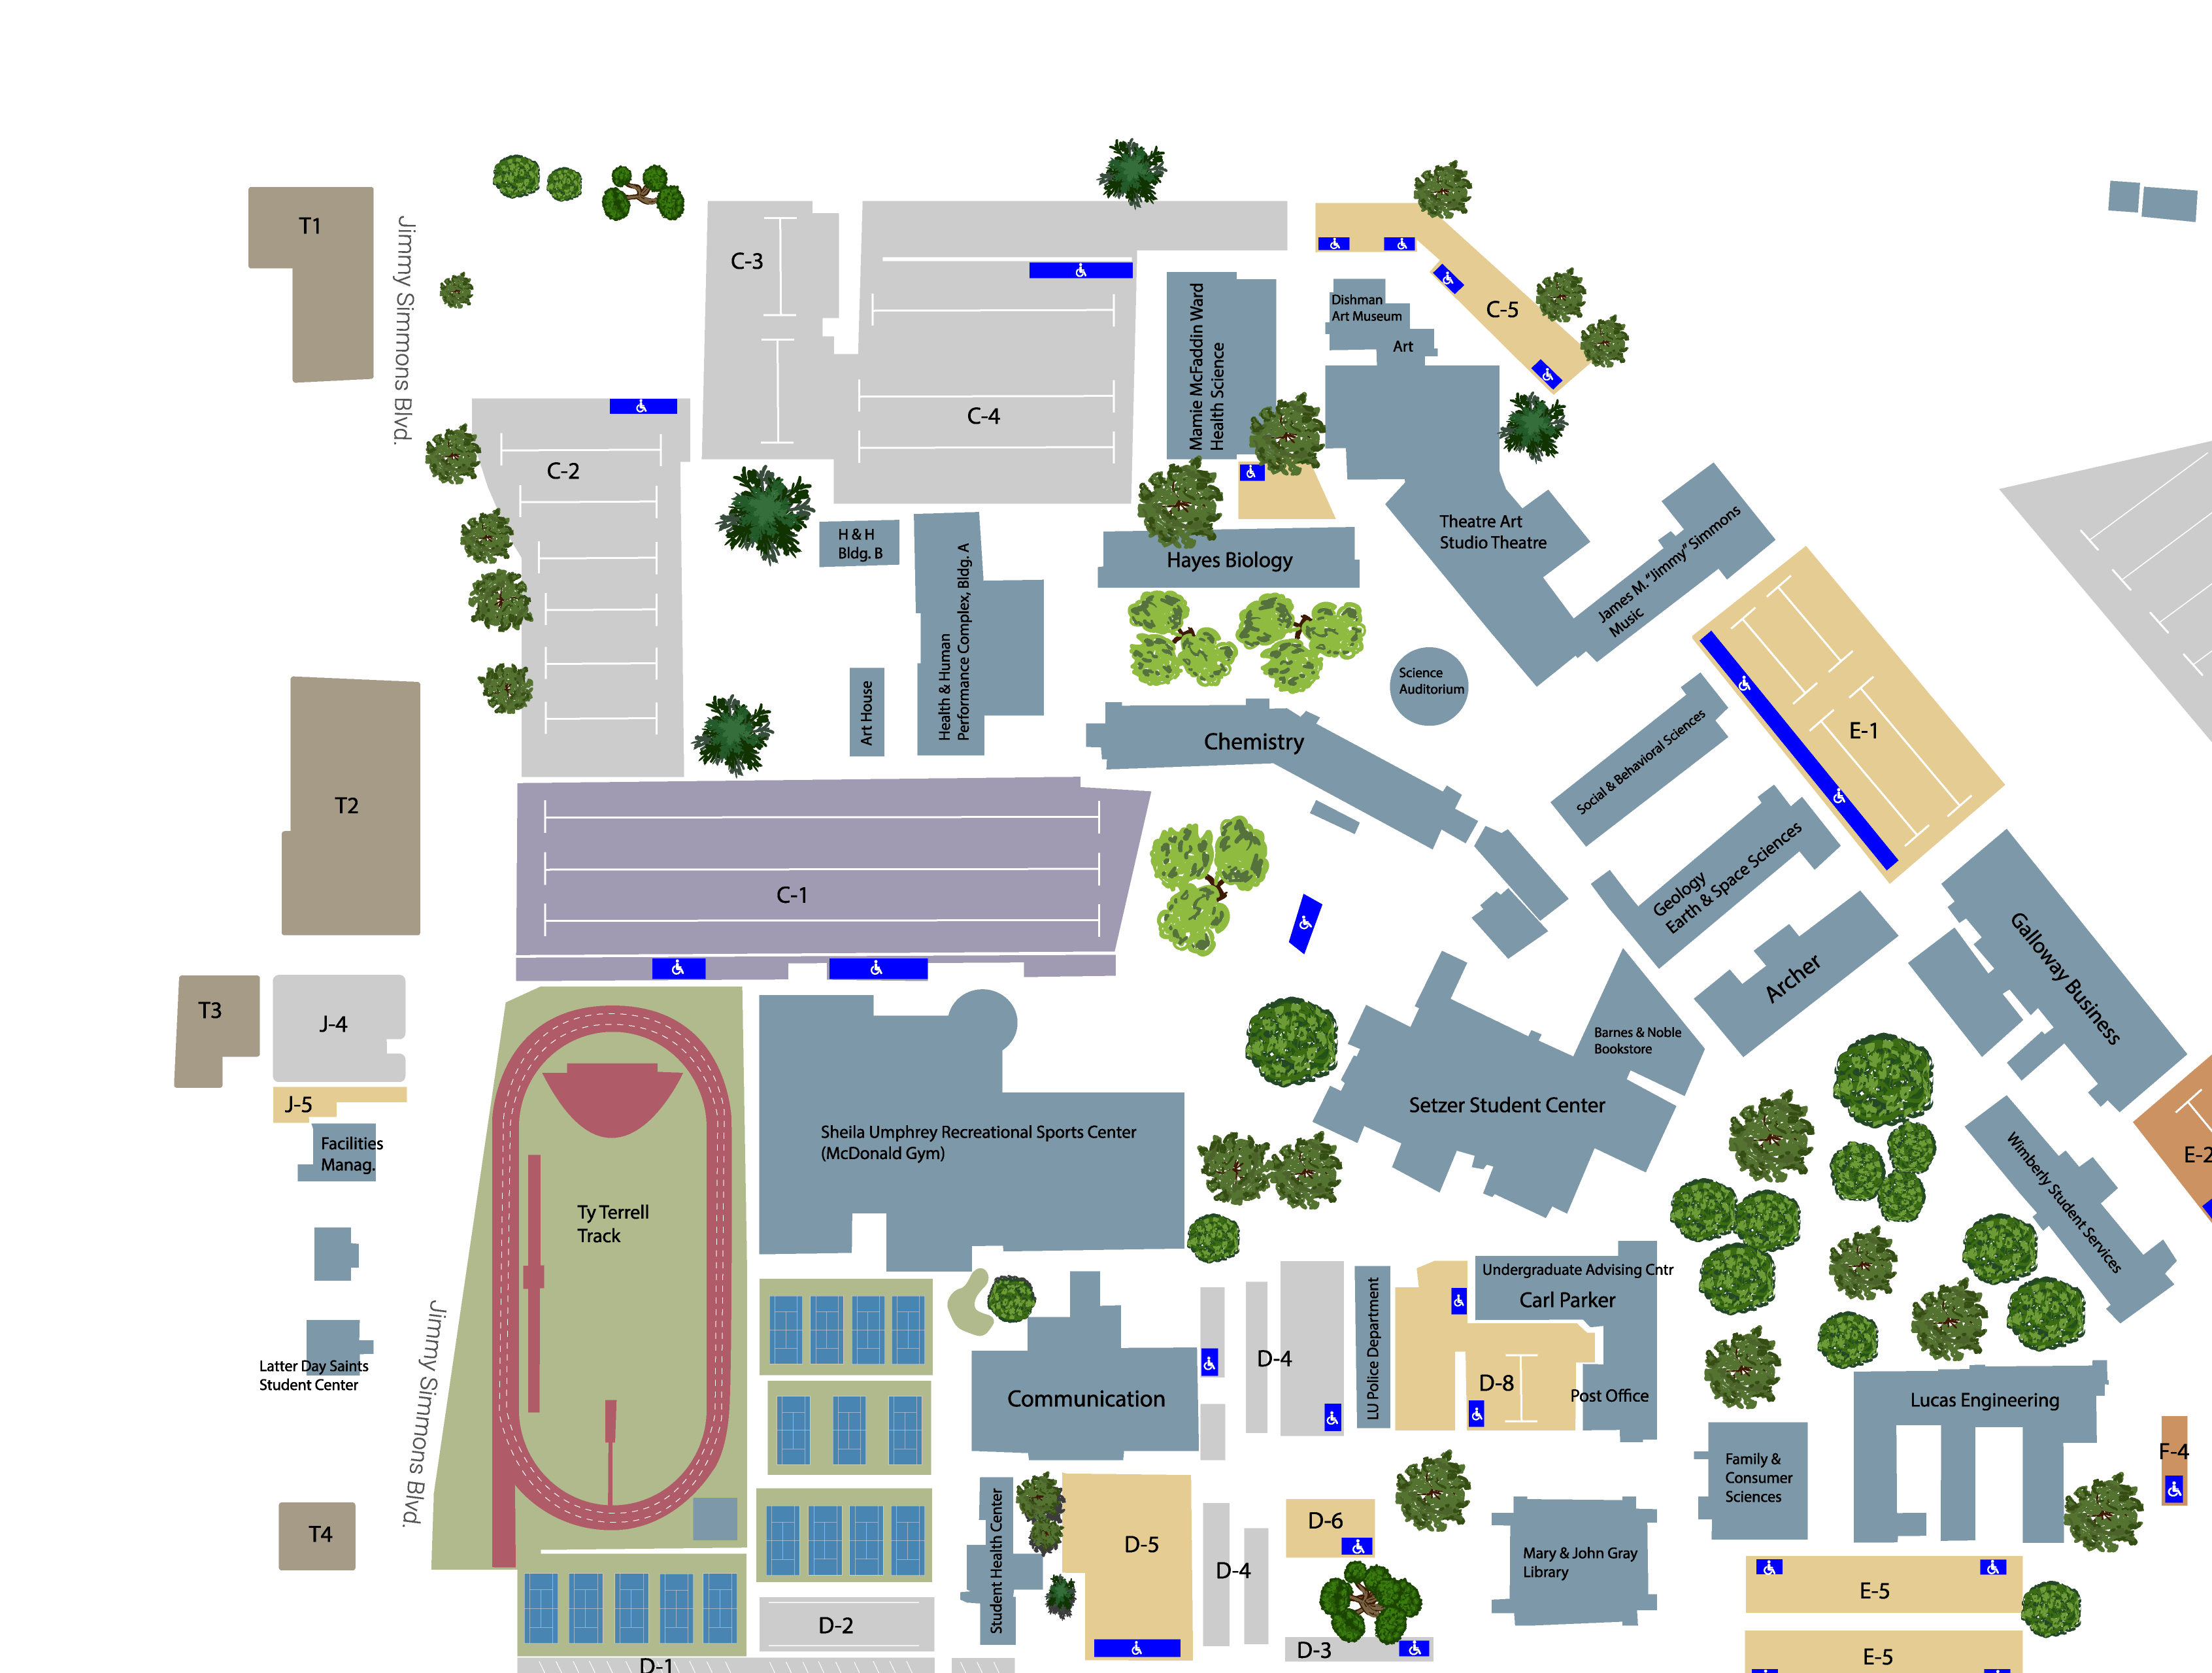 Lamar University Campus Map on newman college accommodations, lancaster university campus map, newman university map, melbourne campus map, university of birmingham campus map, soas campus map, university of sheffield campus map, coventry university campus map, newman school map, university of wolverhampton campus map, glasgow school of art campus map,